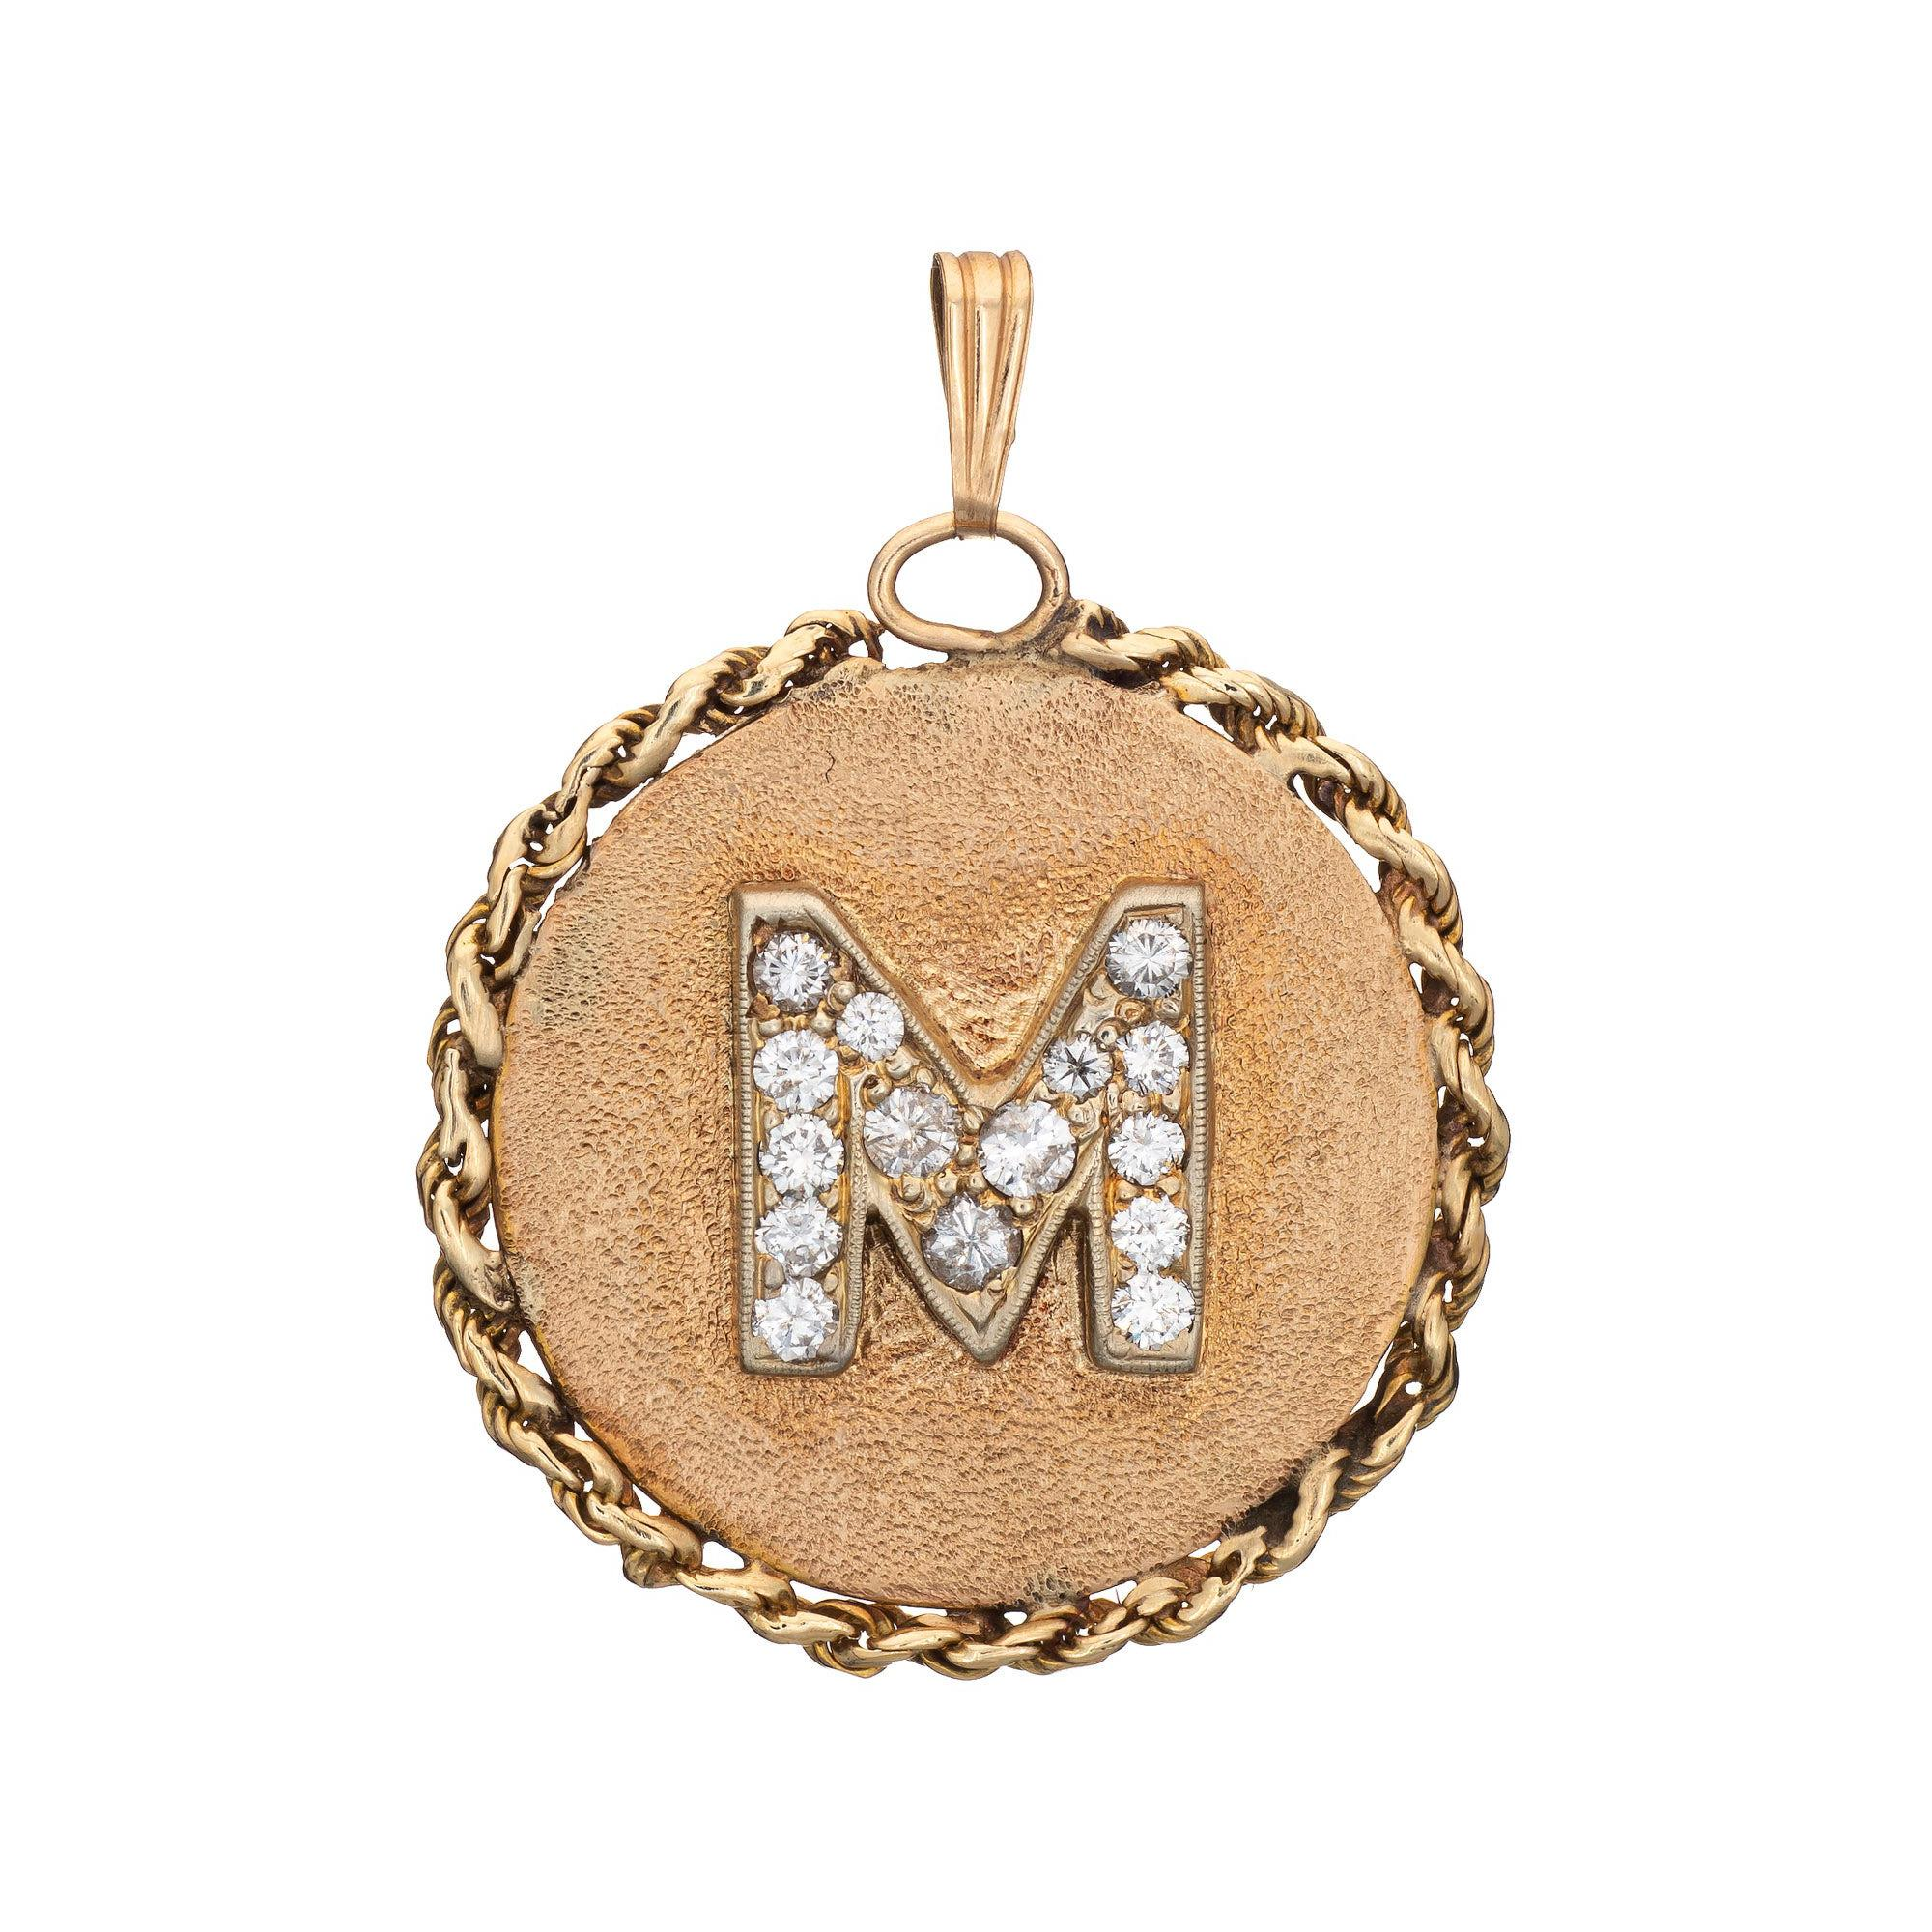 Vintage Letter M Pendant Diamond 14k Yellow Gold Initial Charm Jewelry Round